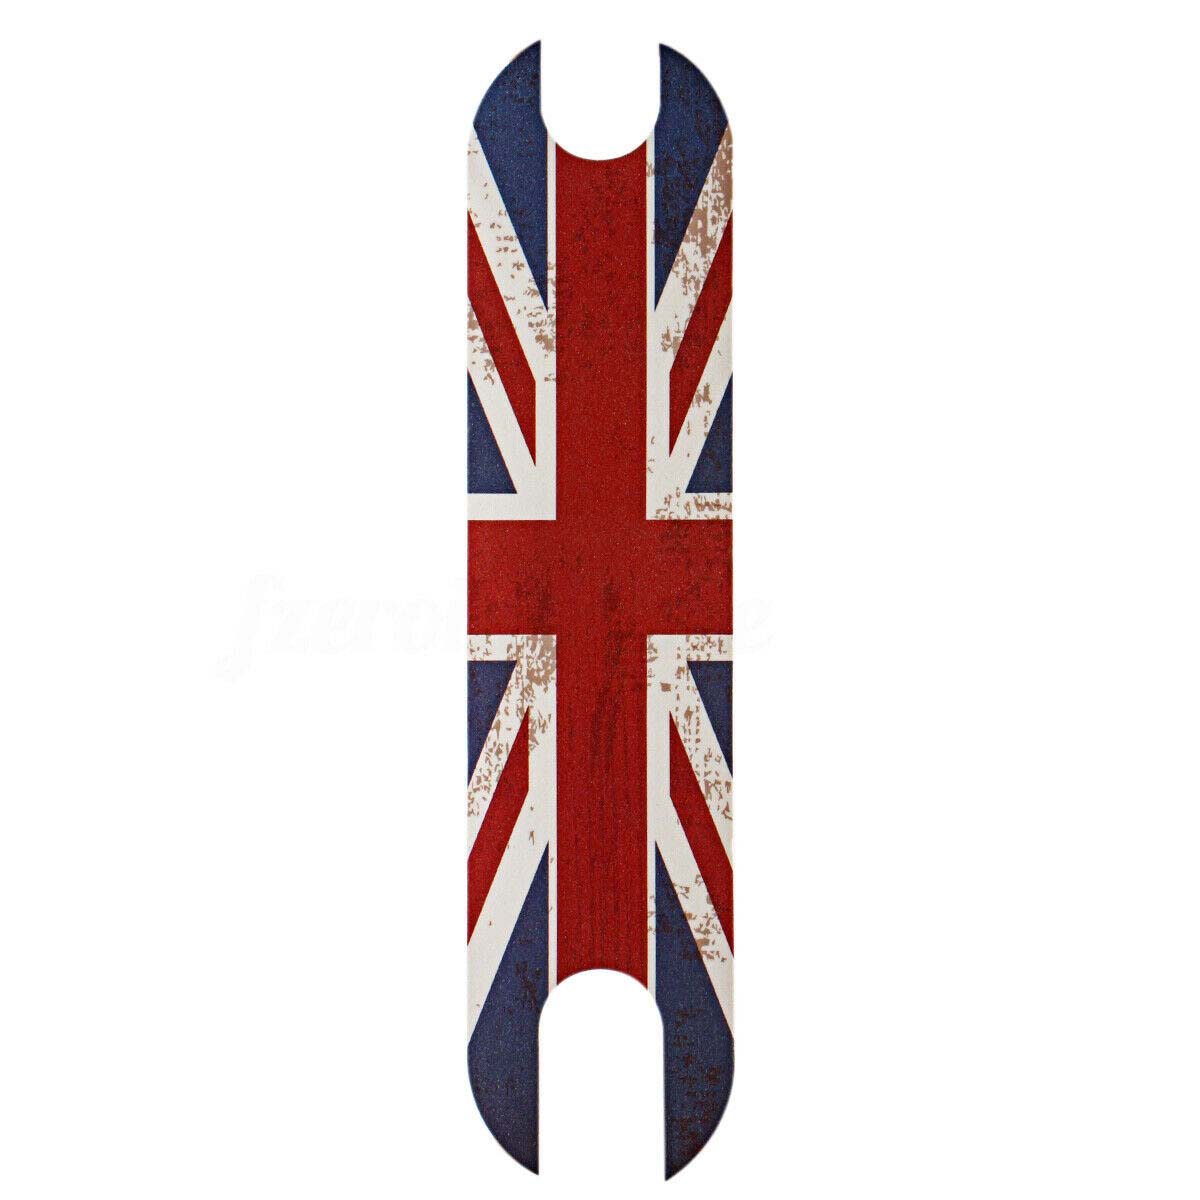 Xiaomi Mijia M365 Accessory - STD - Union Jack (UK) Design - Grip Tape